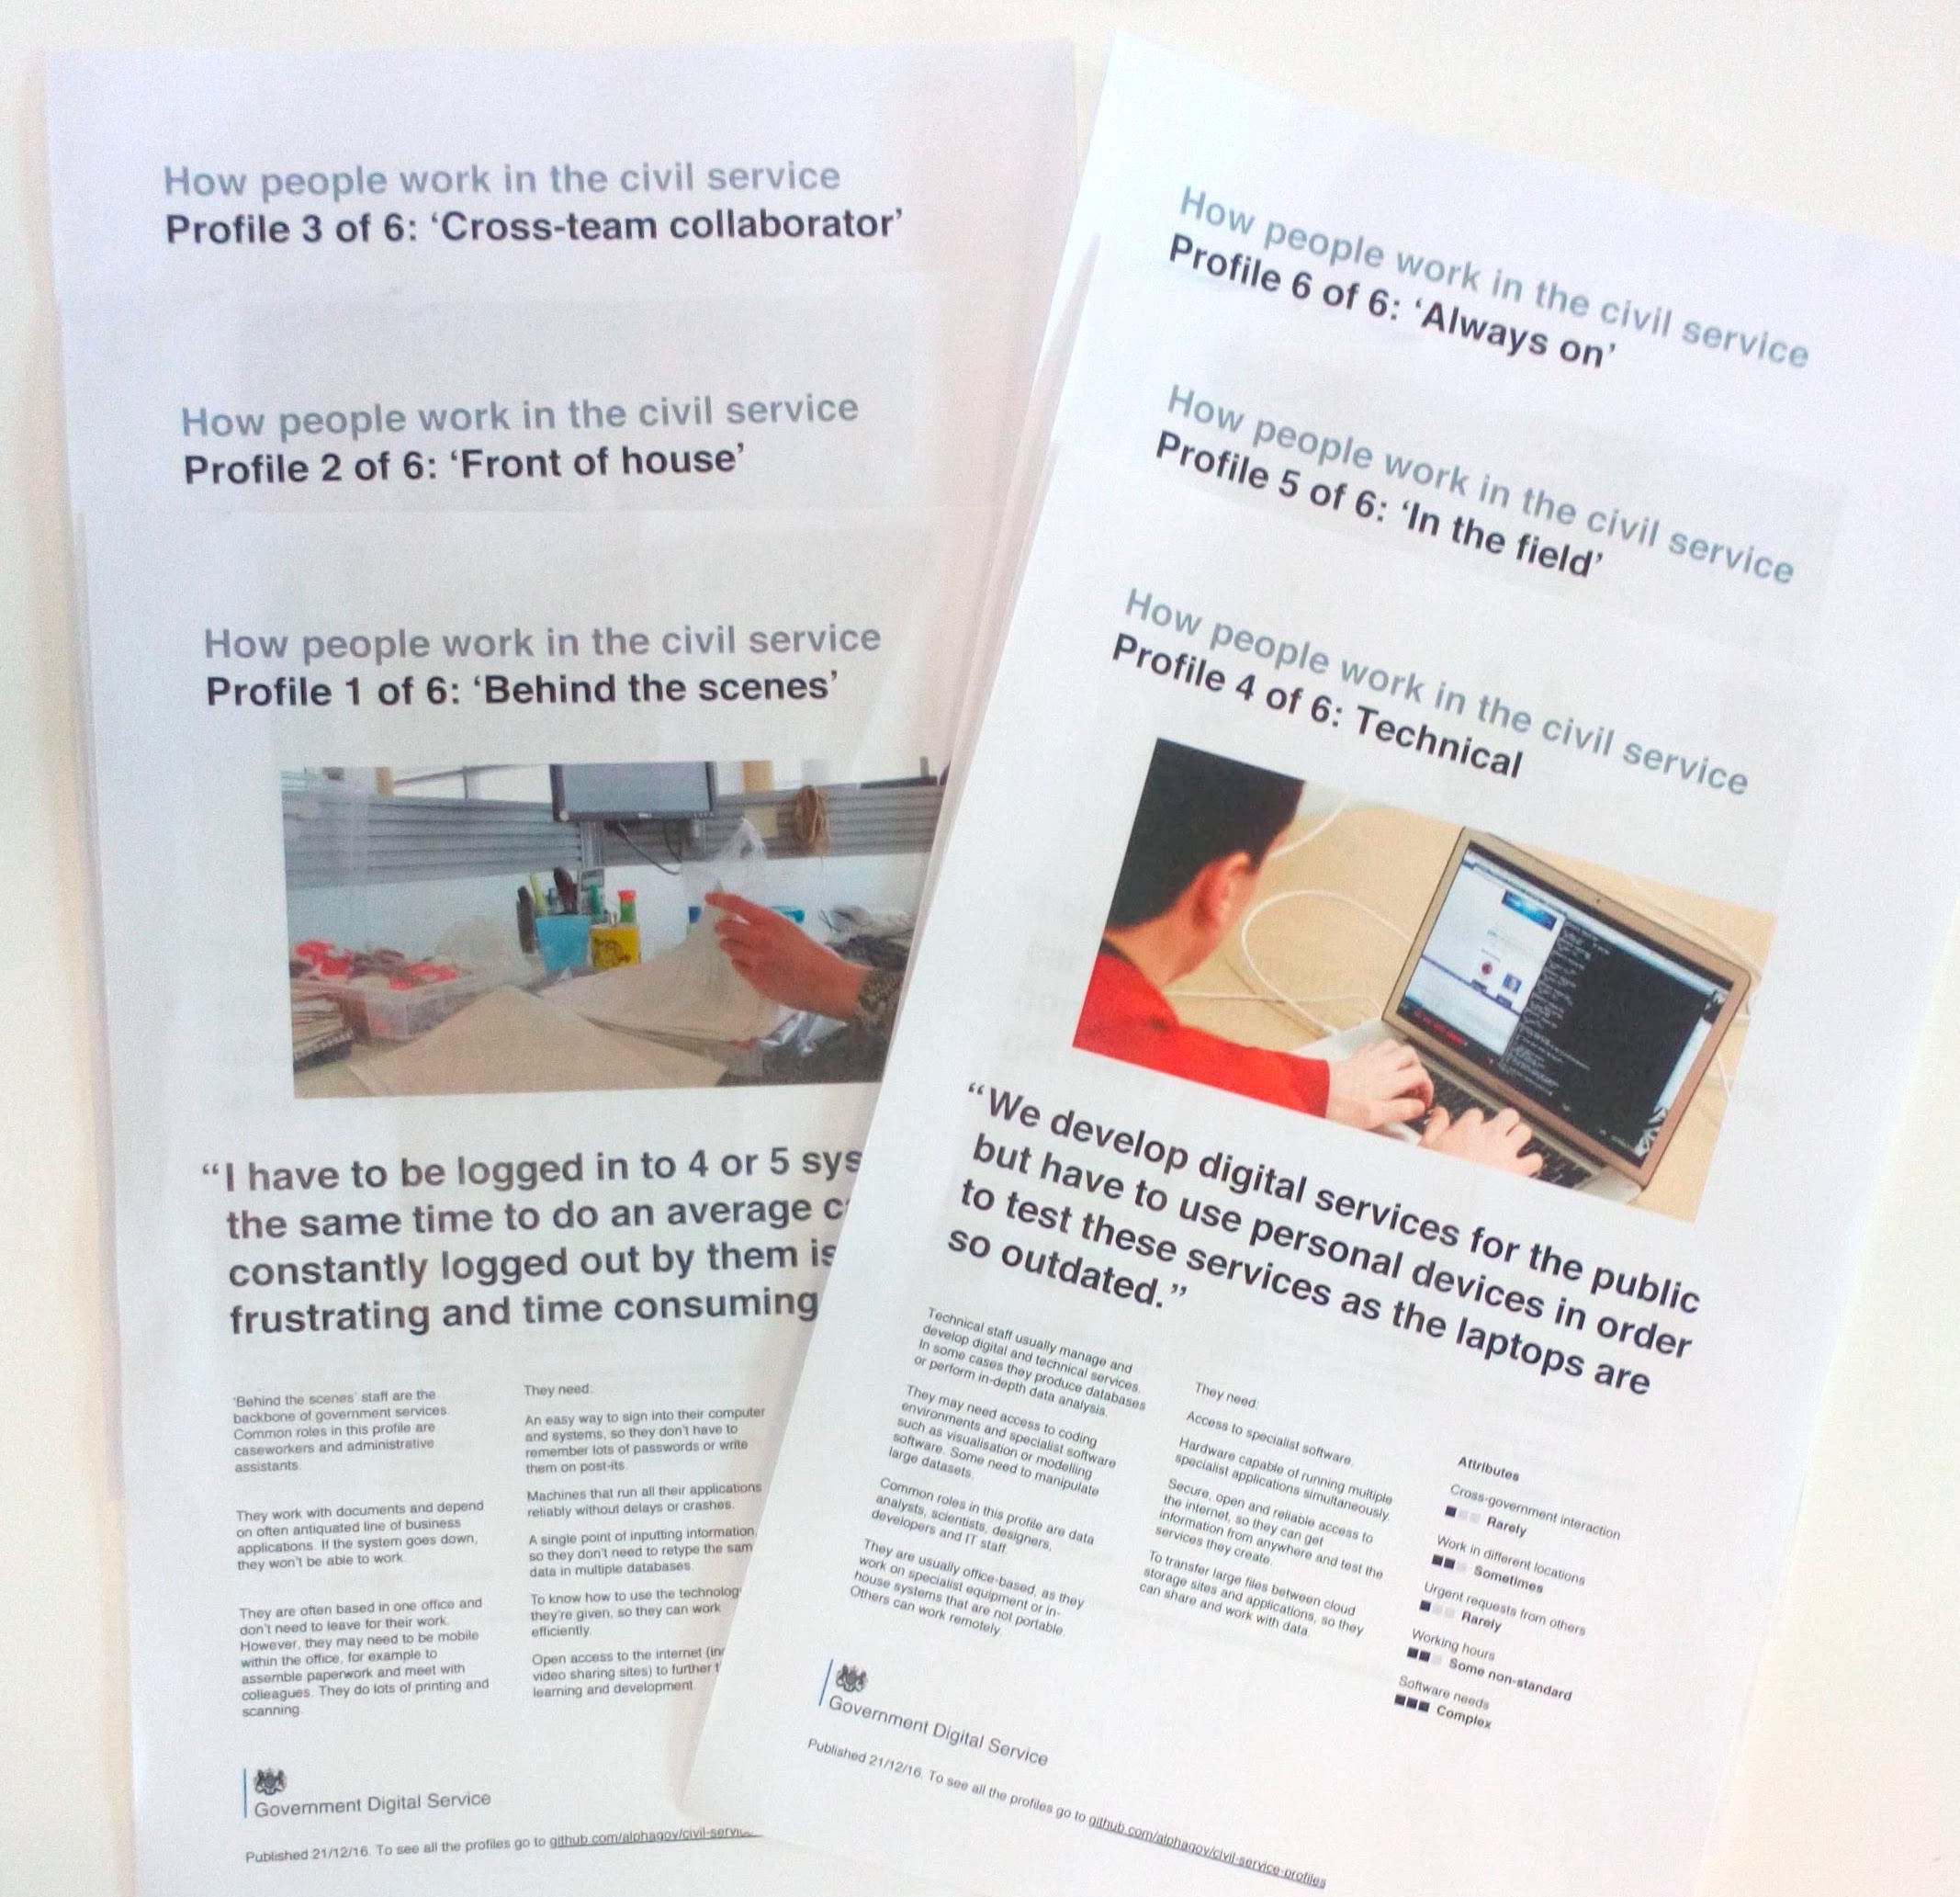 Photo of printed copies of the civil servant profiles